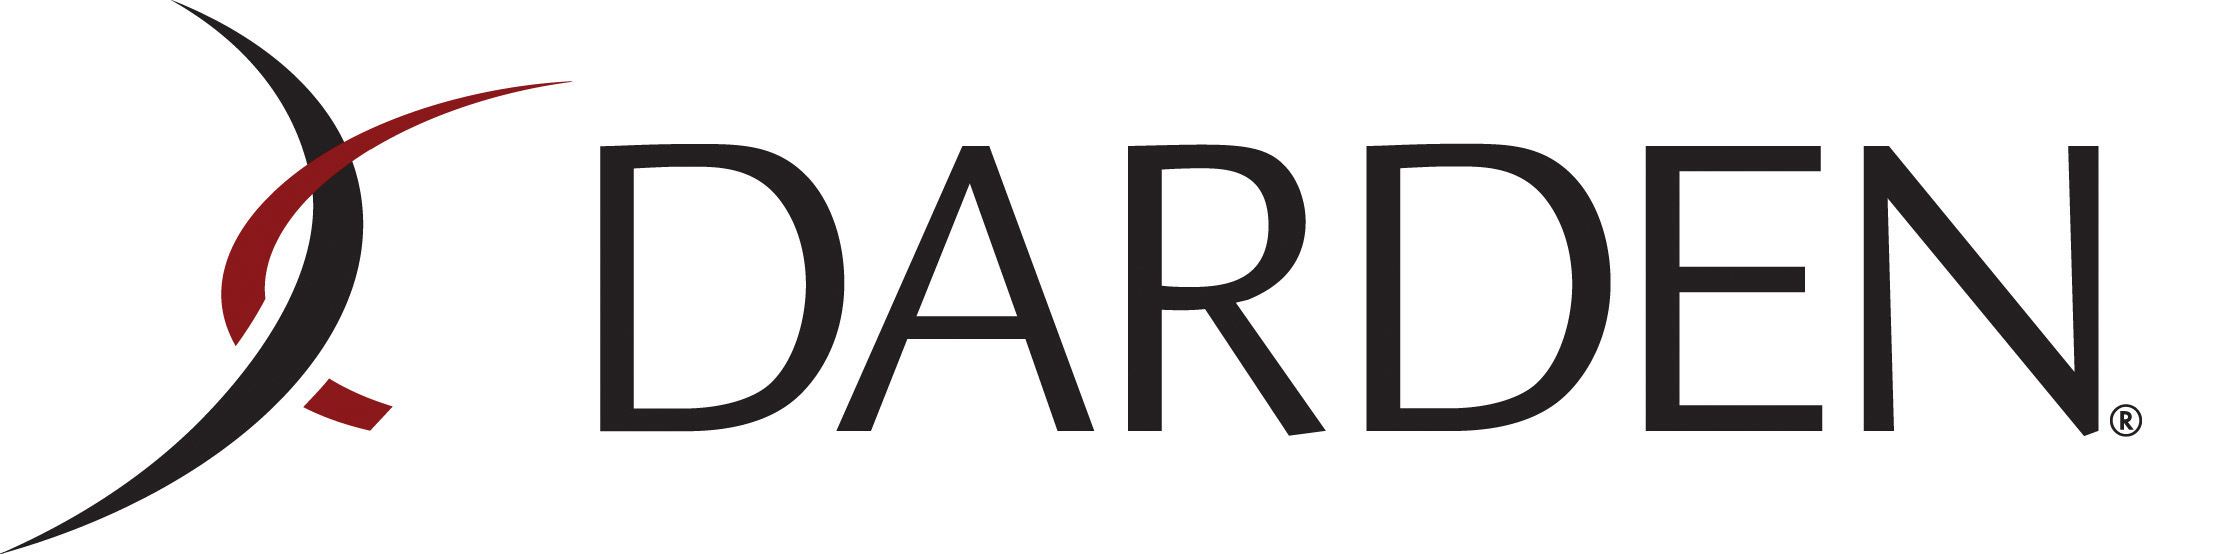 Darden Logo - simple.jpg